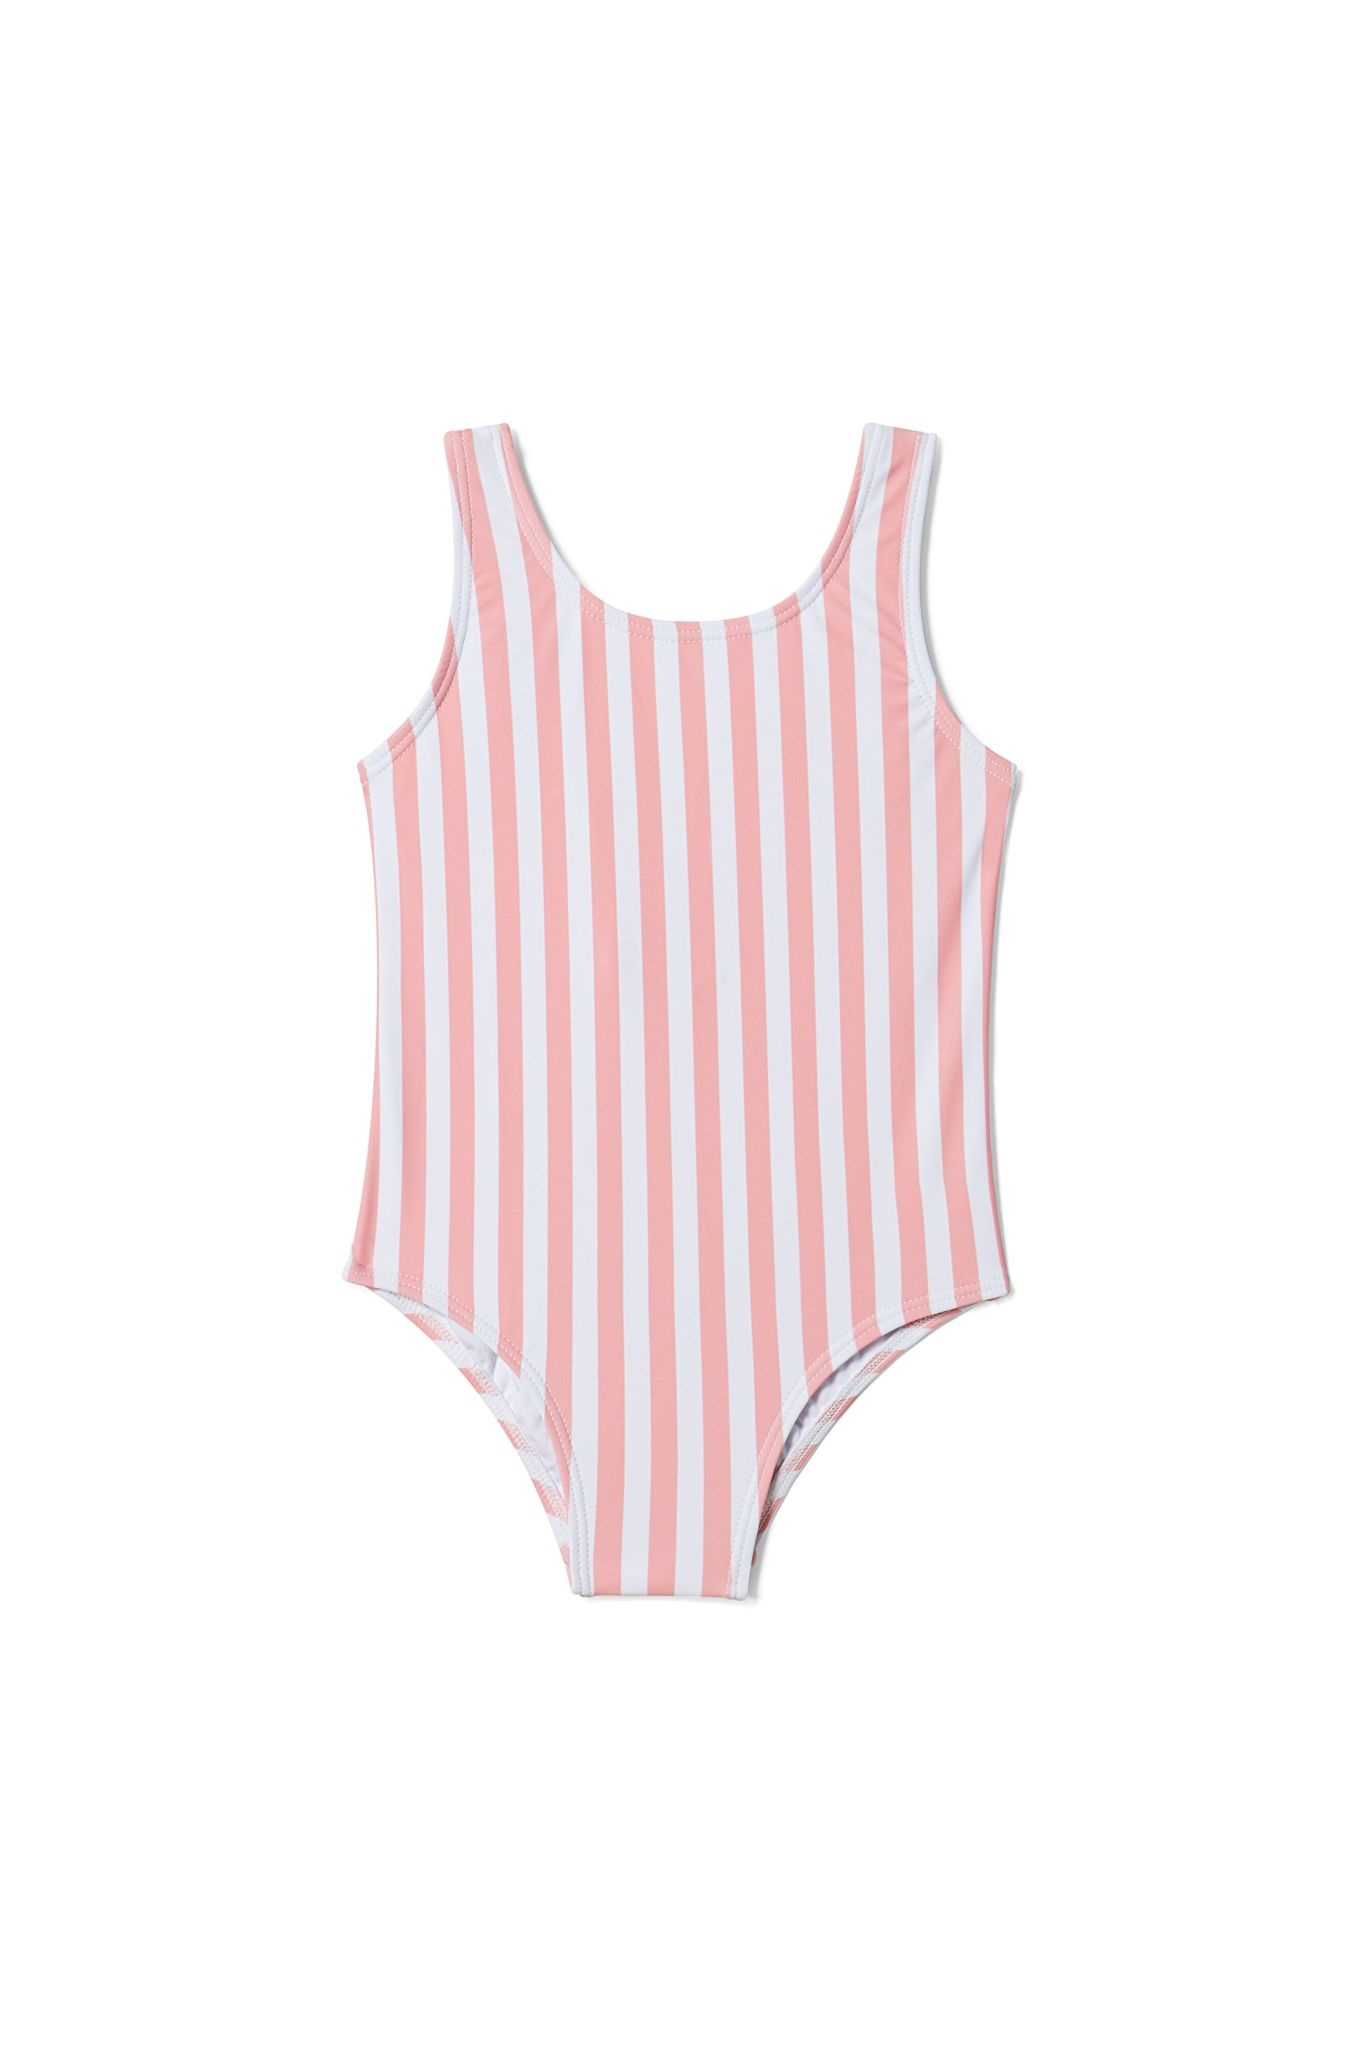 PLUM Cabana Swimsuit